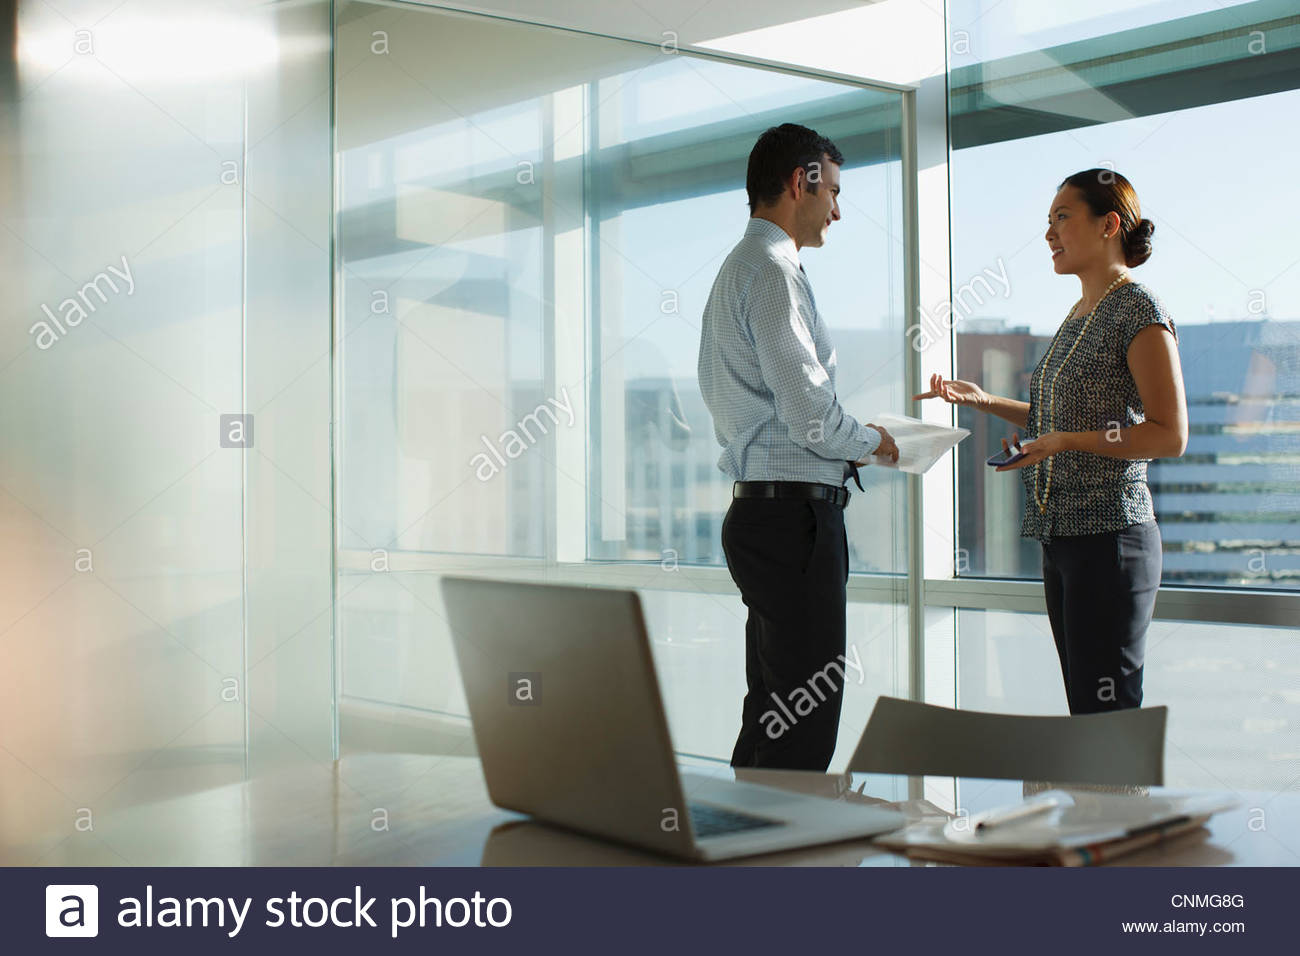 Business people talking in office Photo Stock